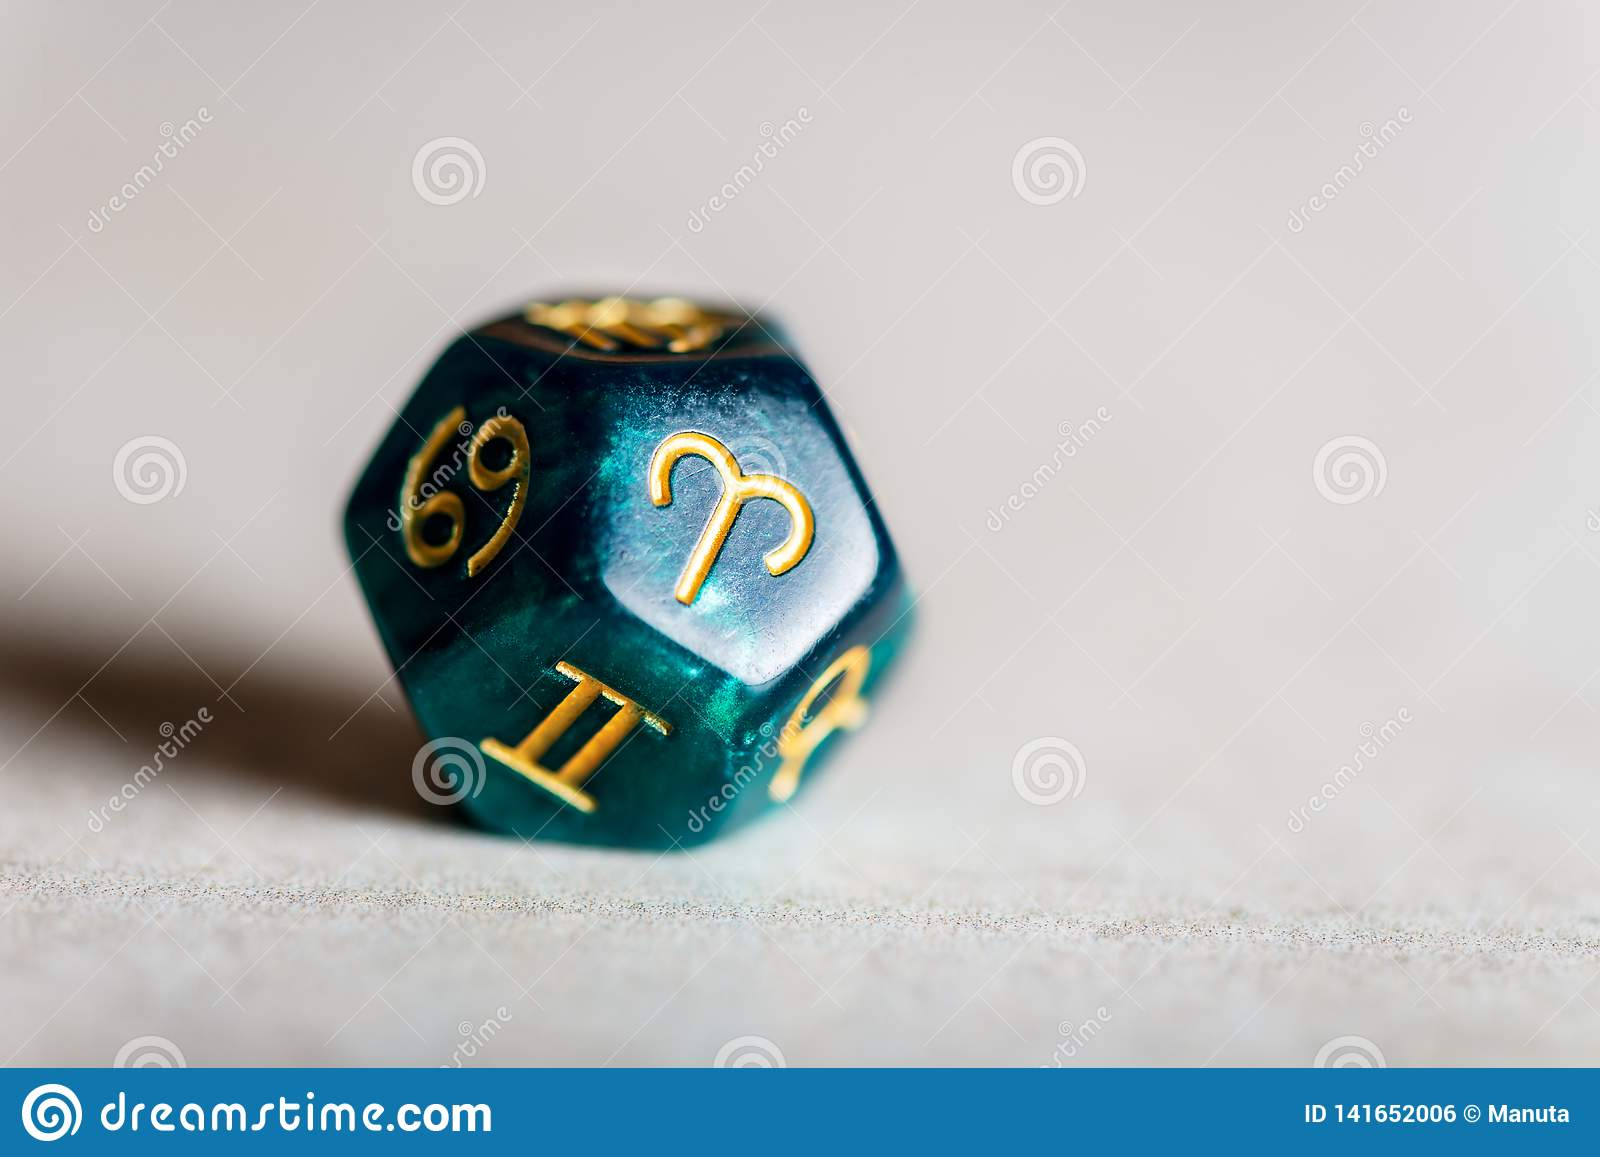 Astrology Dice with zodiac symbol of Aries